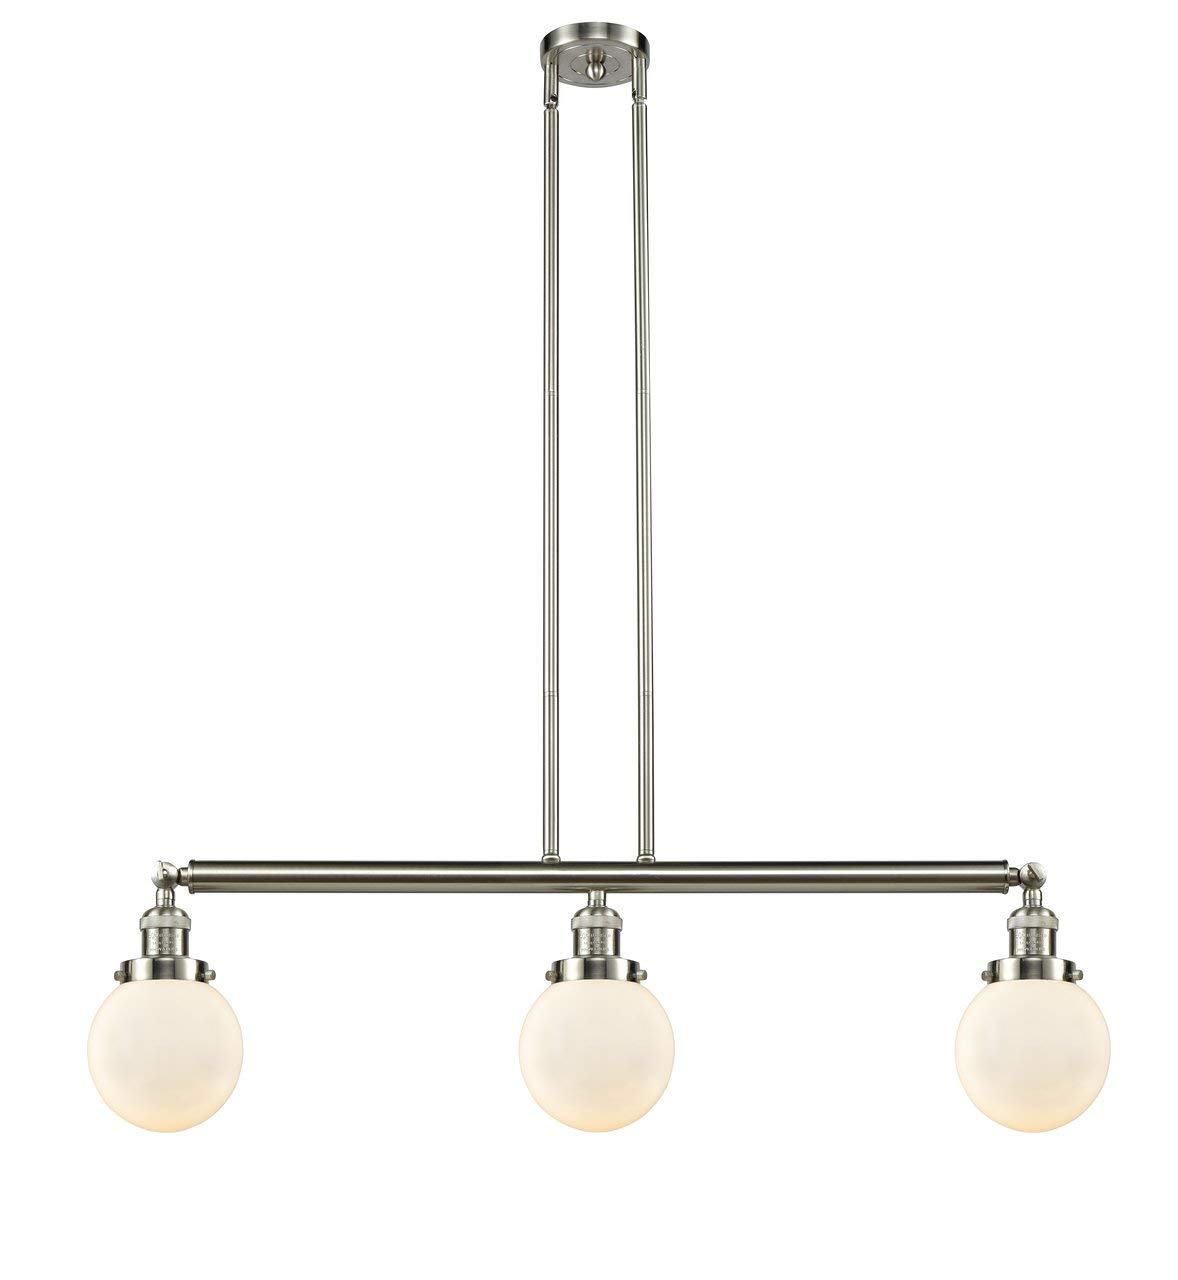 INNOVATIONS LIGHTING 213-SN-S-G201-6-LED 3 Light Vintage Dimmable LED Beacon 38 inch Island Light